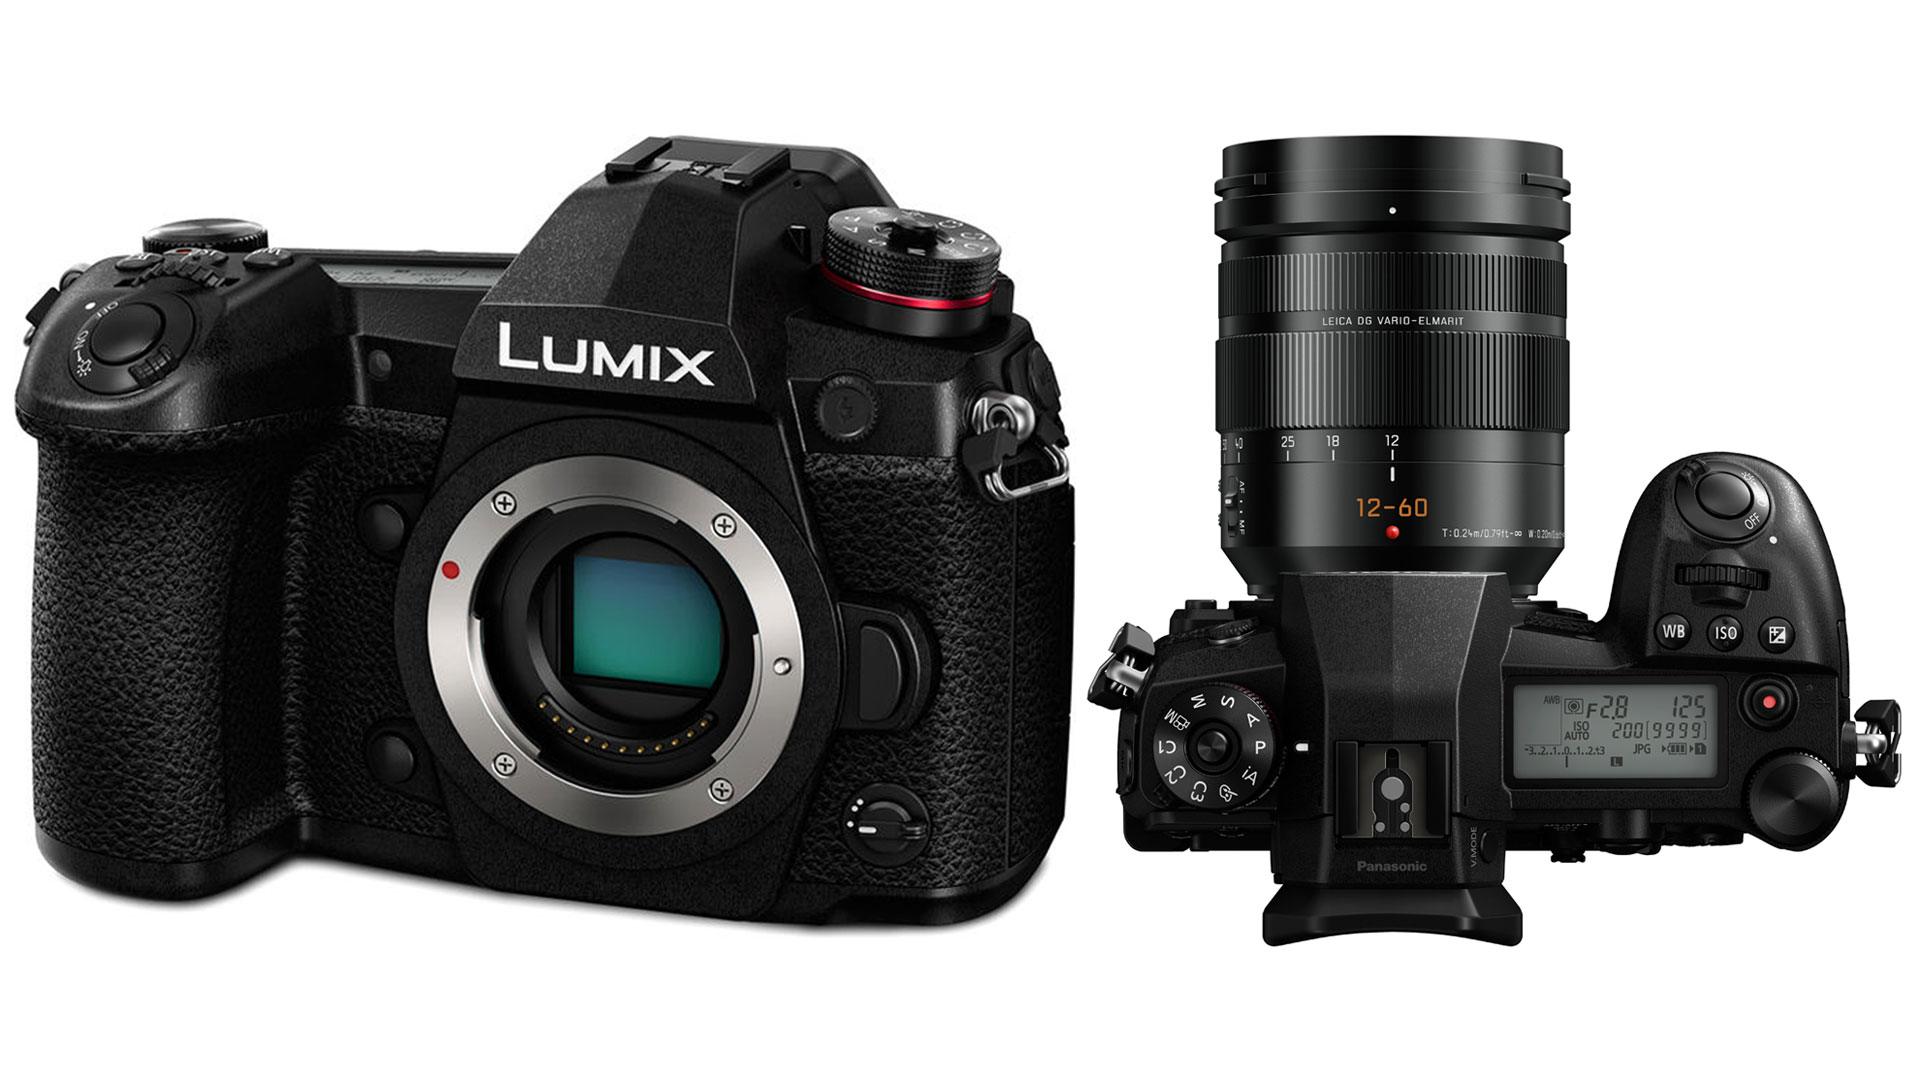 Panasonic Lumix G9 Unveiled With 4k 60p Video Will It